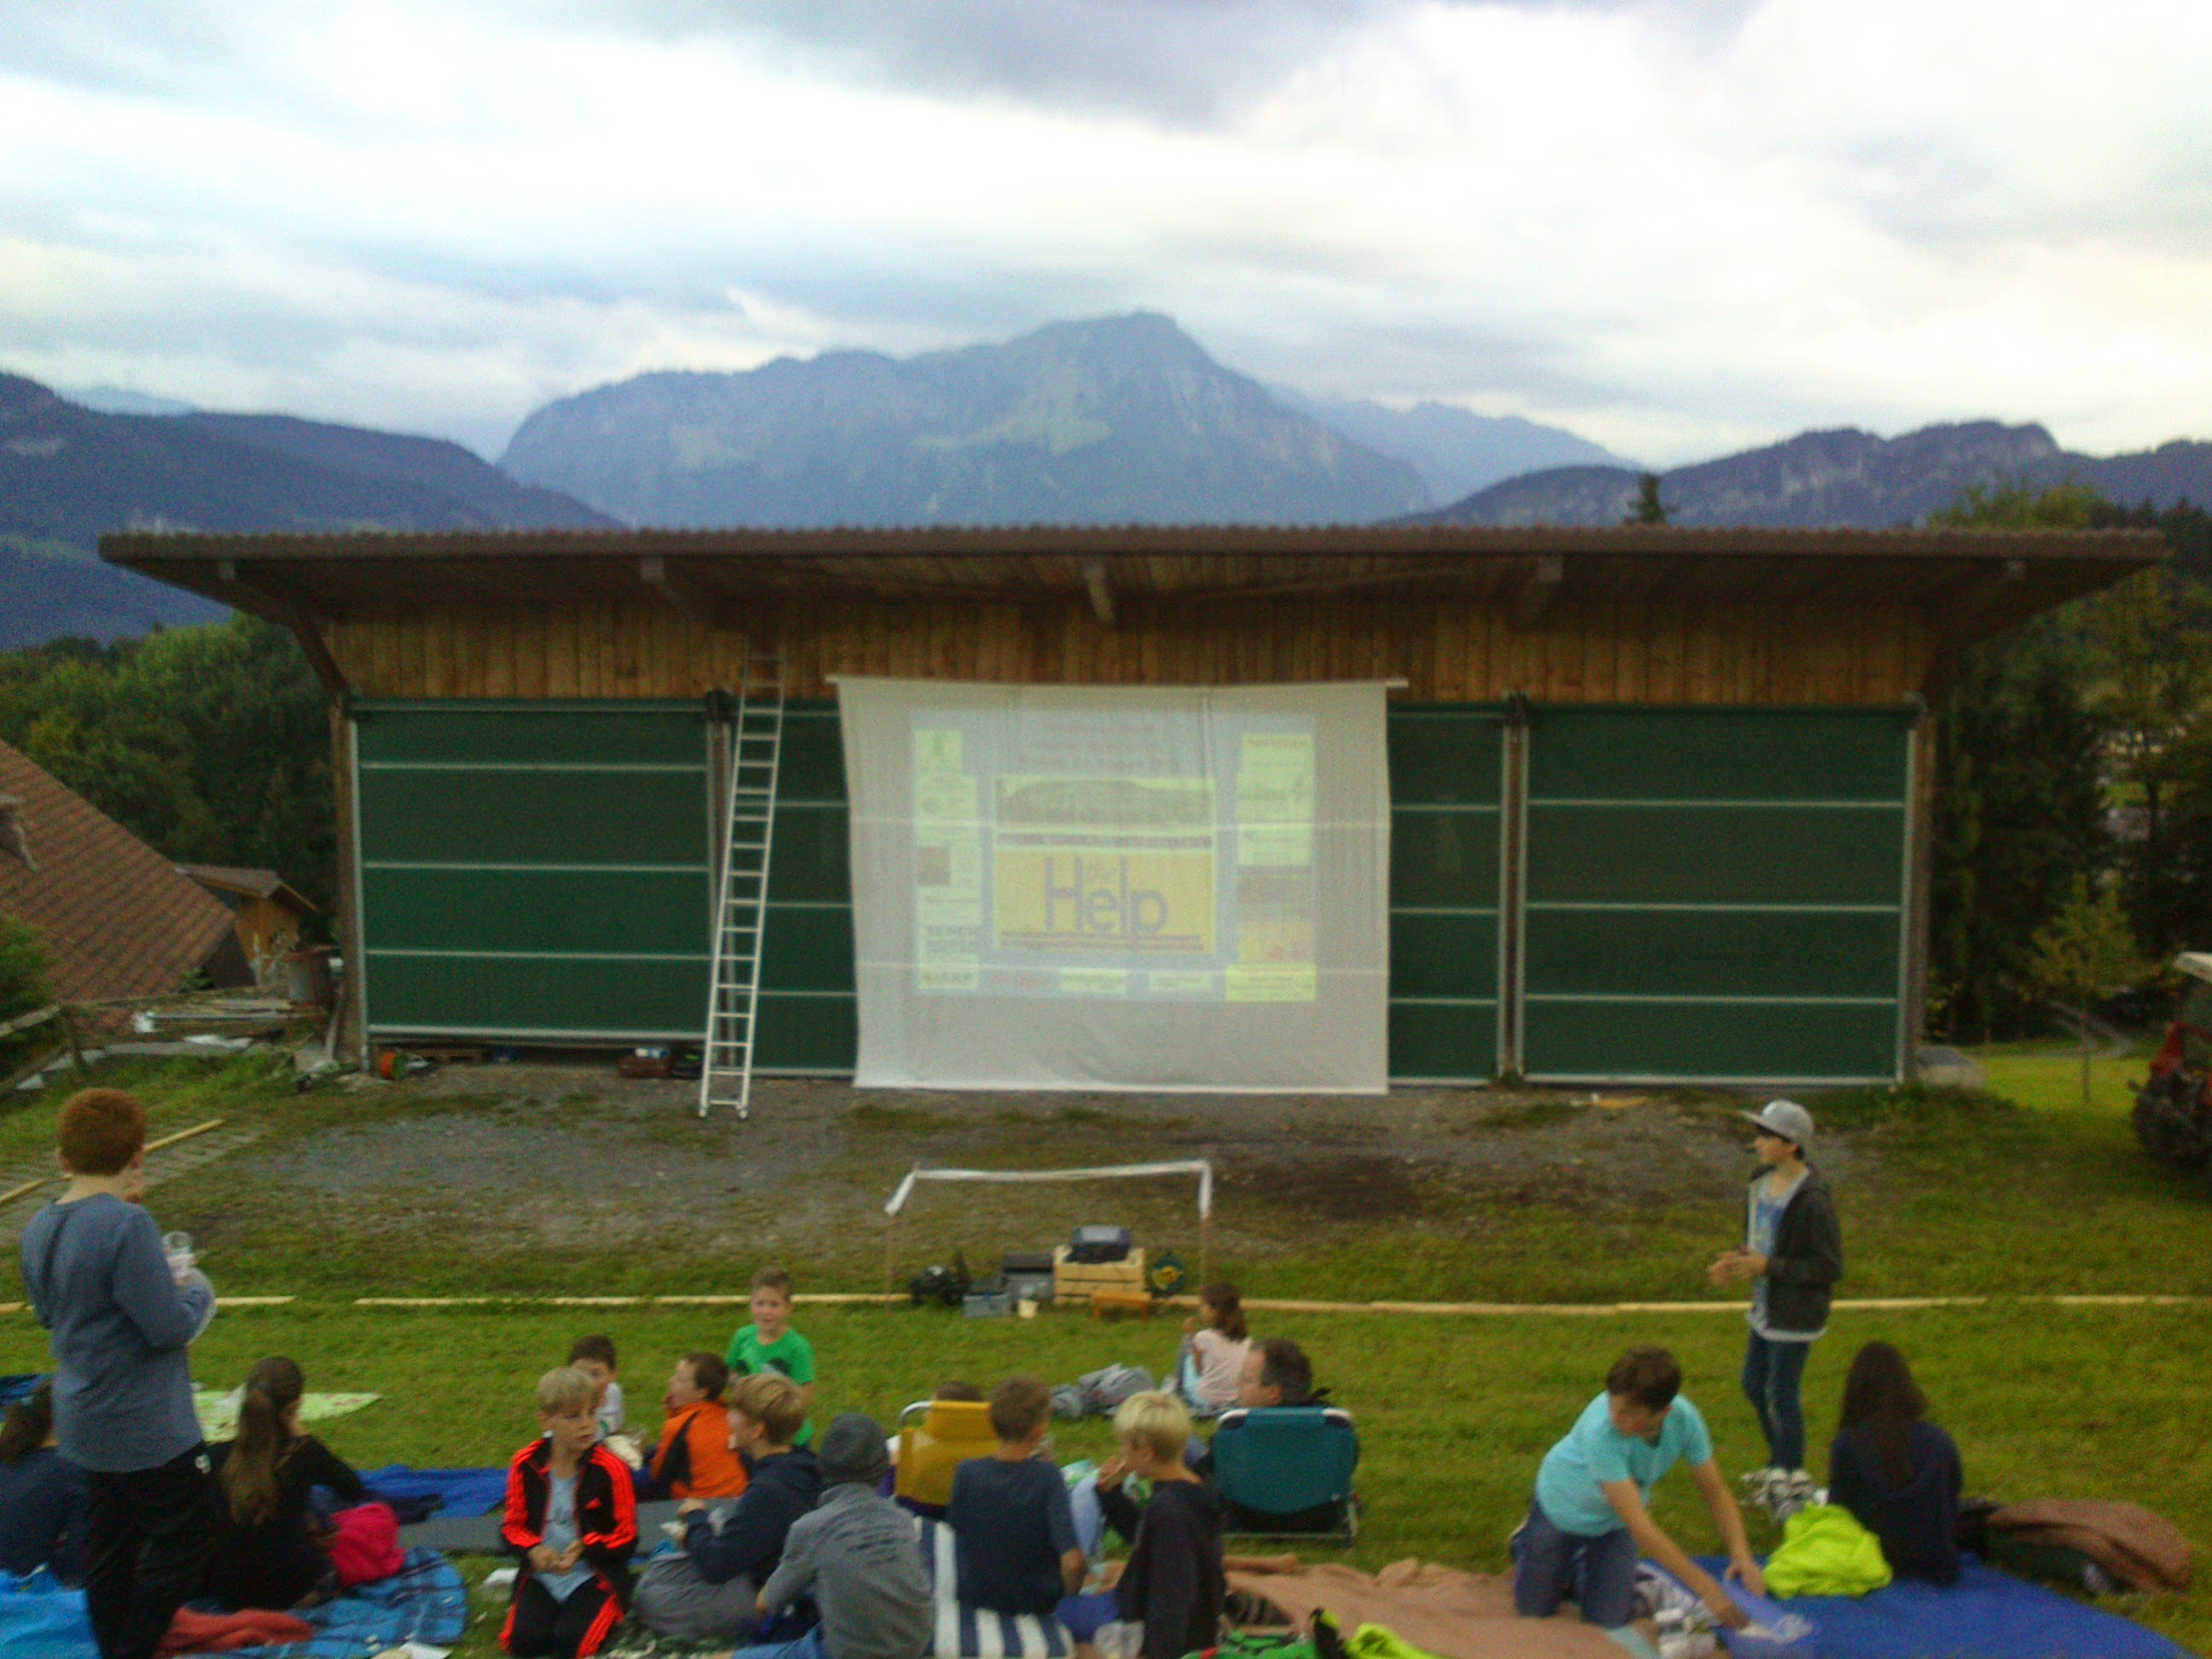 Fotos vom Open-Air-Kino, 22. August 2014